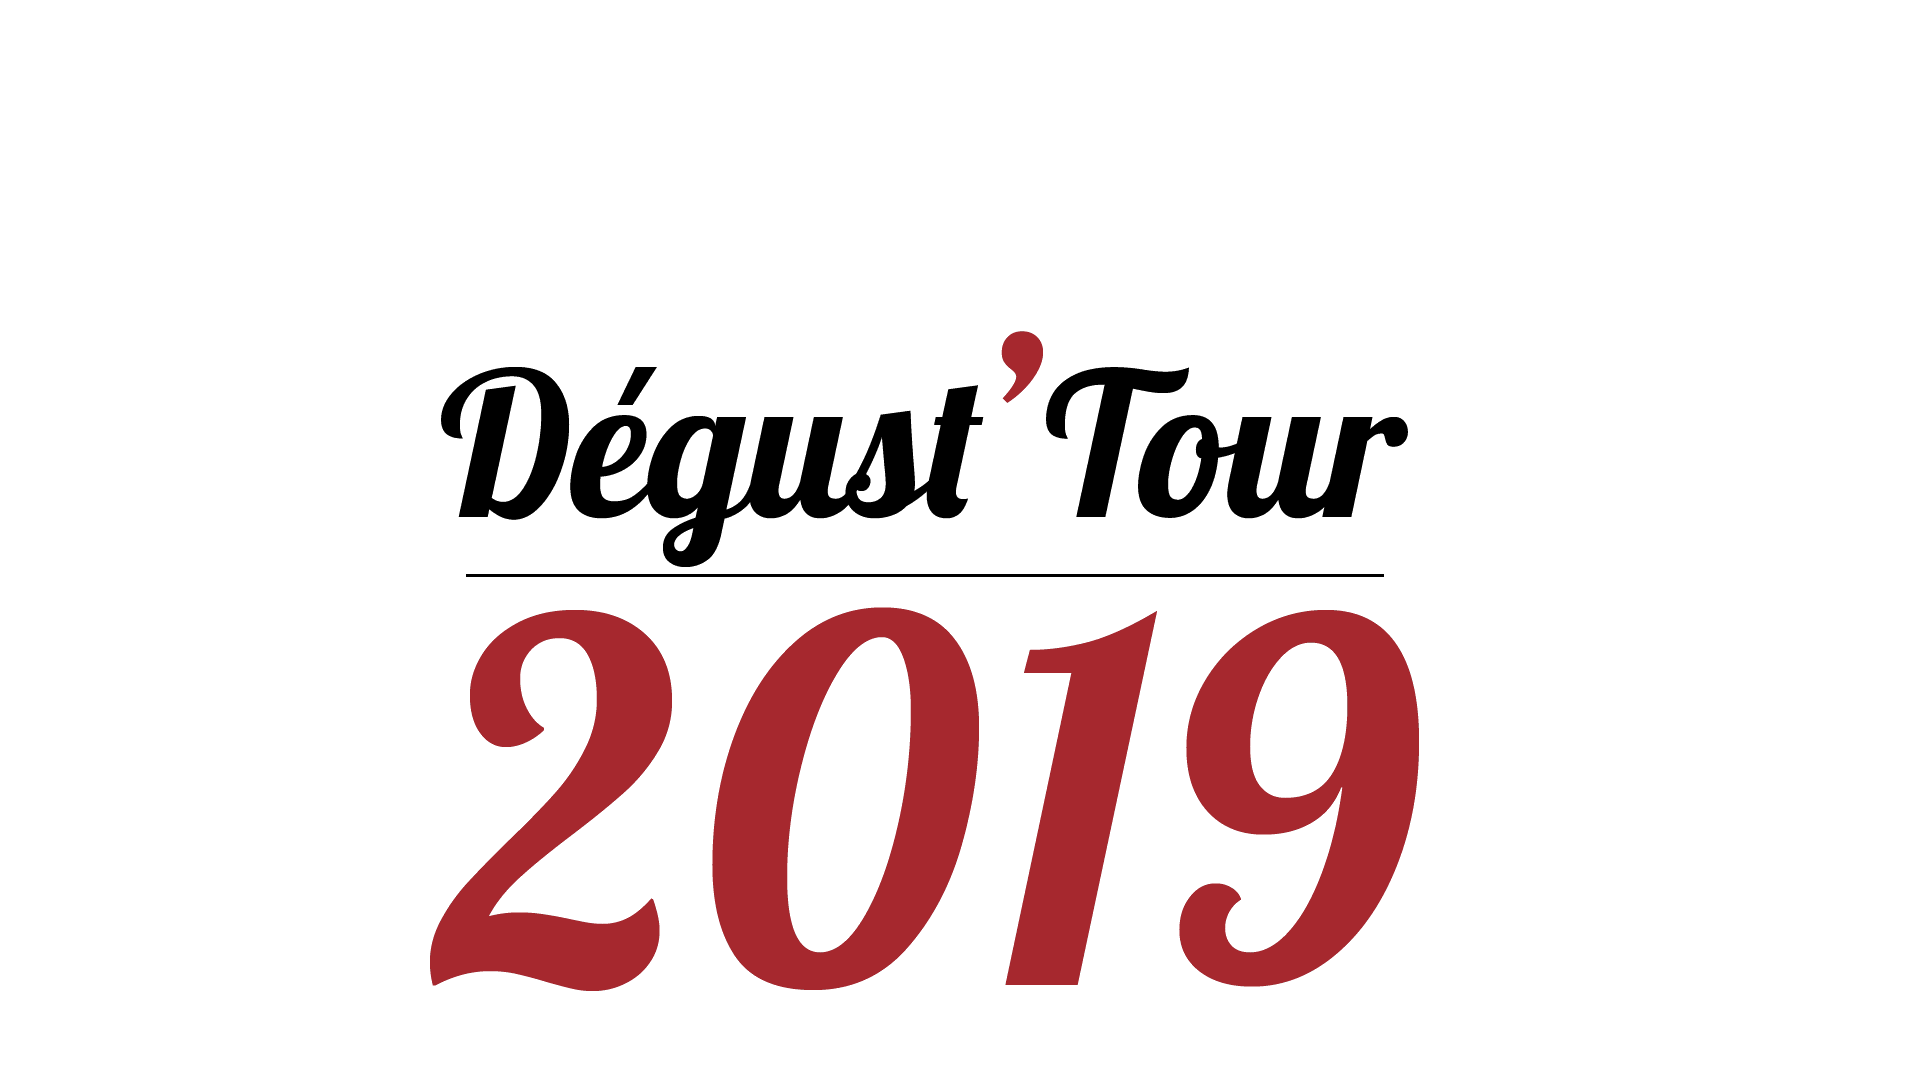 banniere-degust-tour2019 access golf